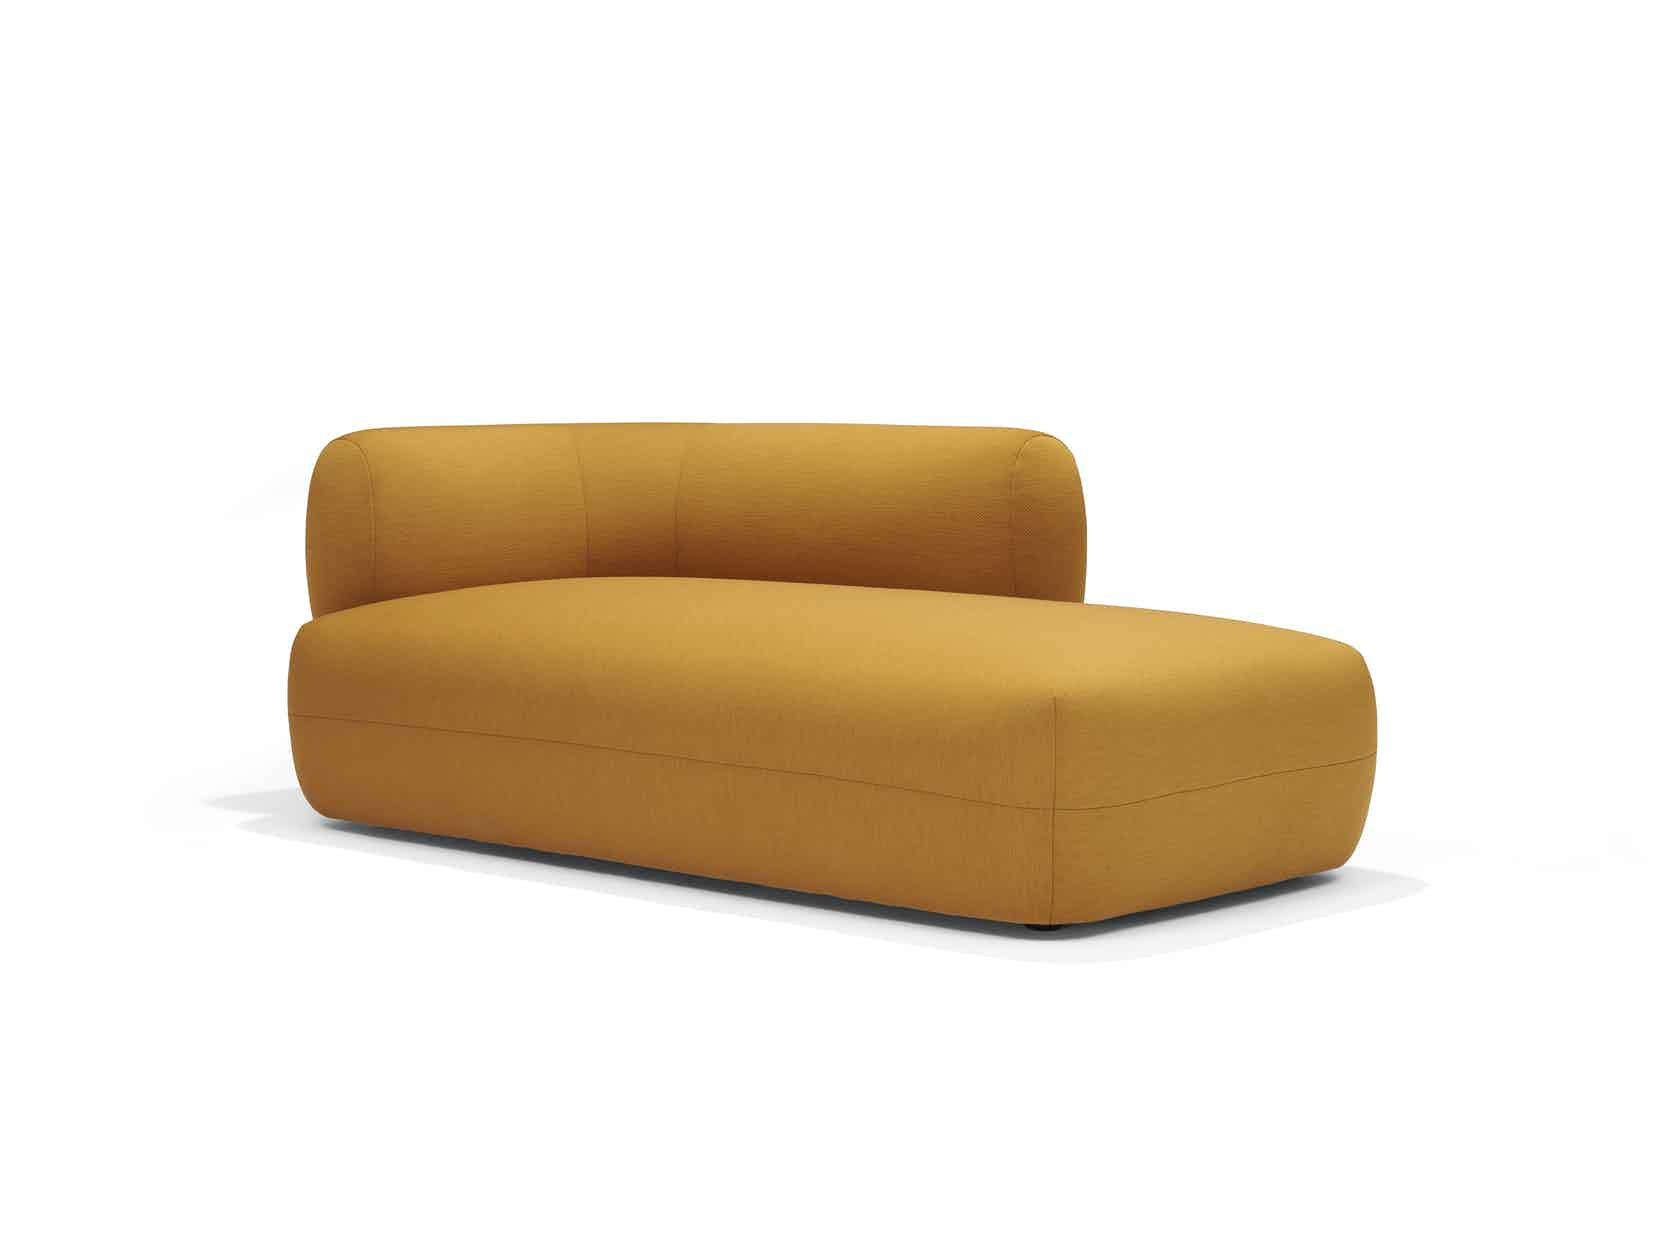 Linteloo-orange-arp-sofa-haute-living